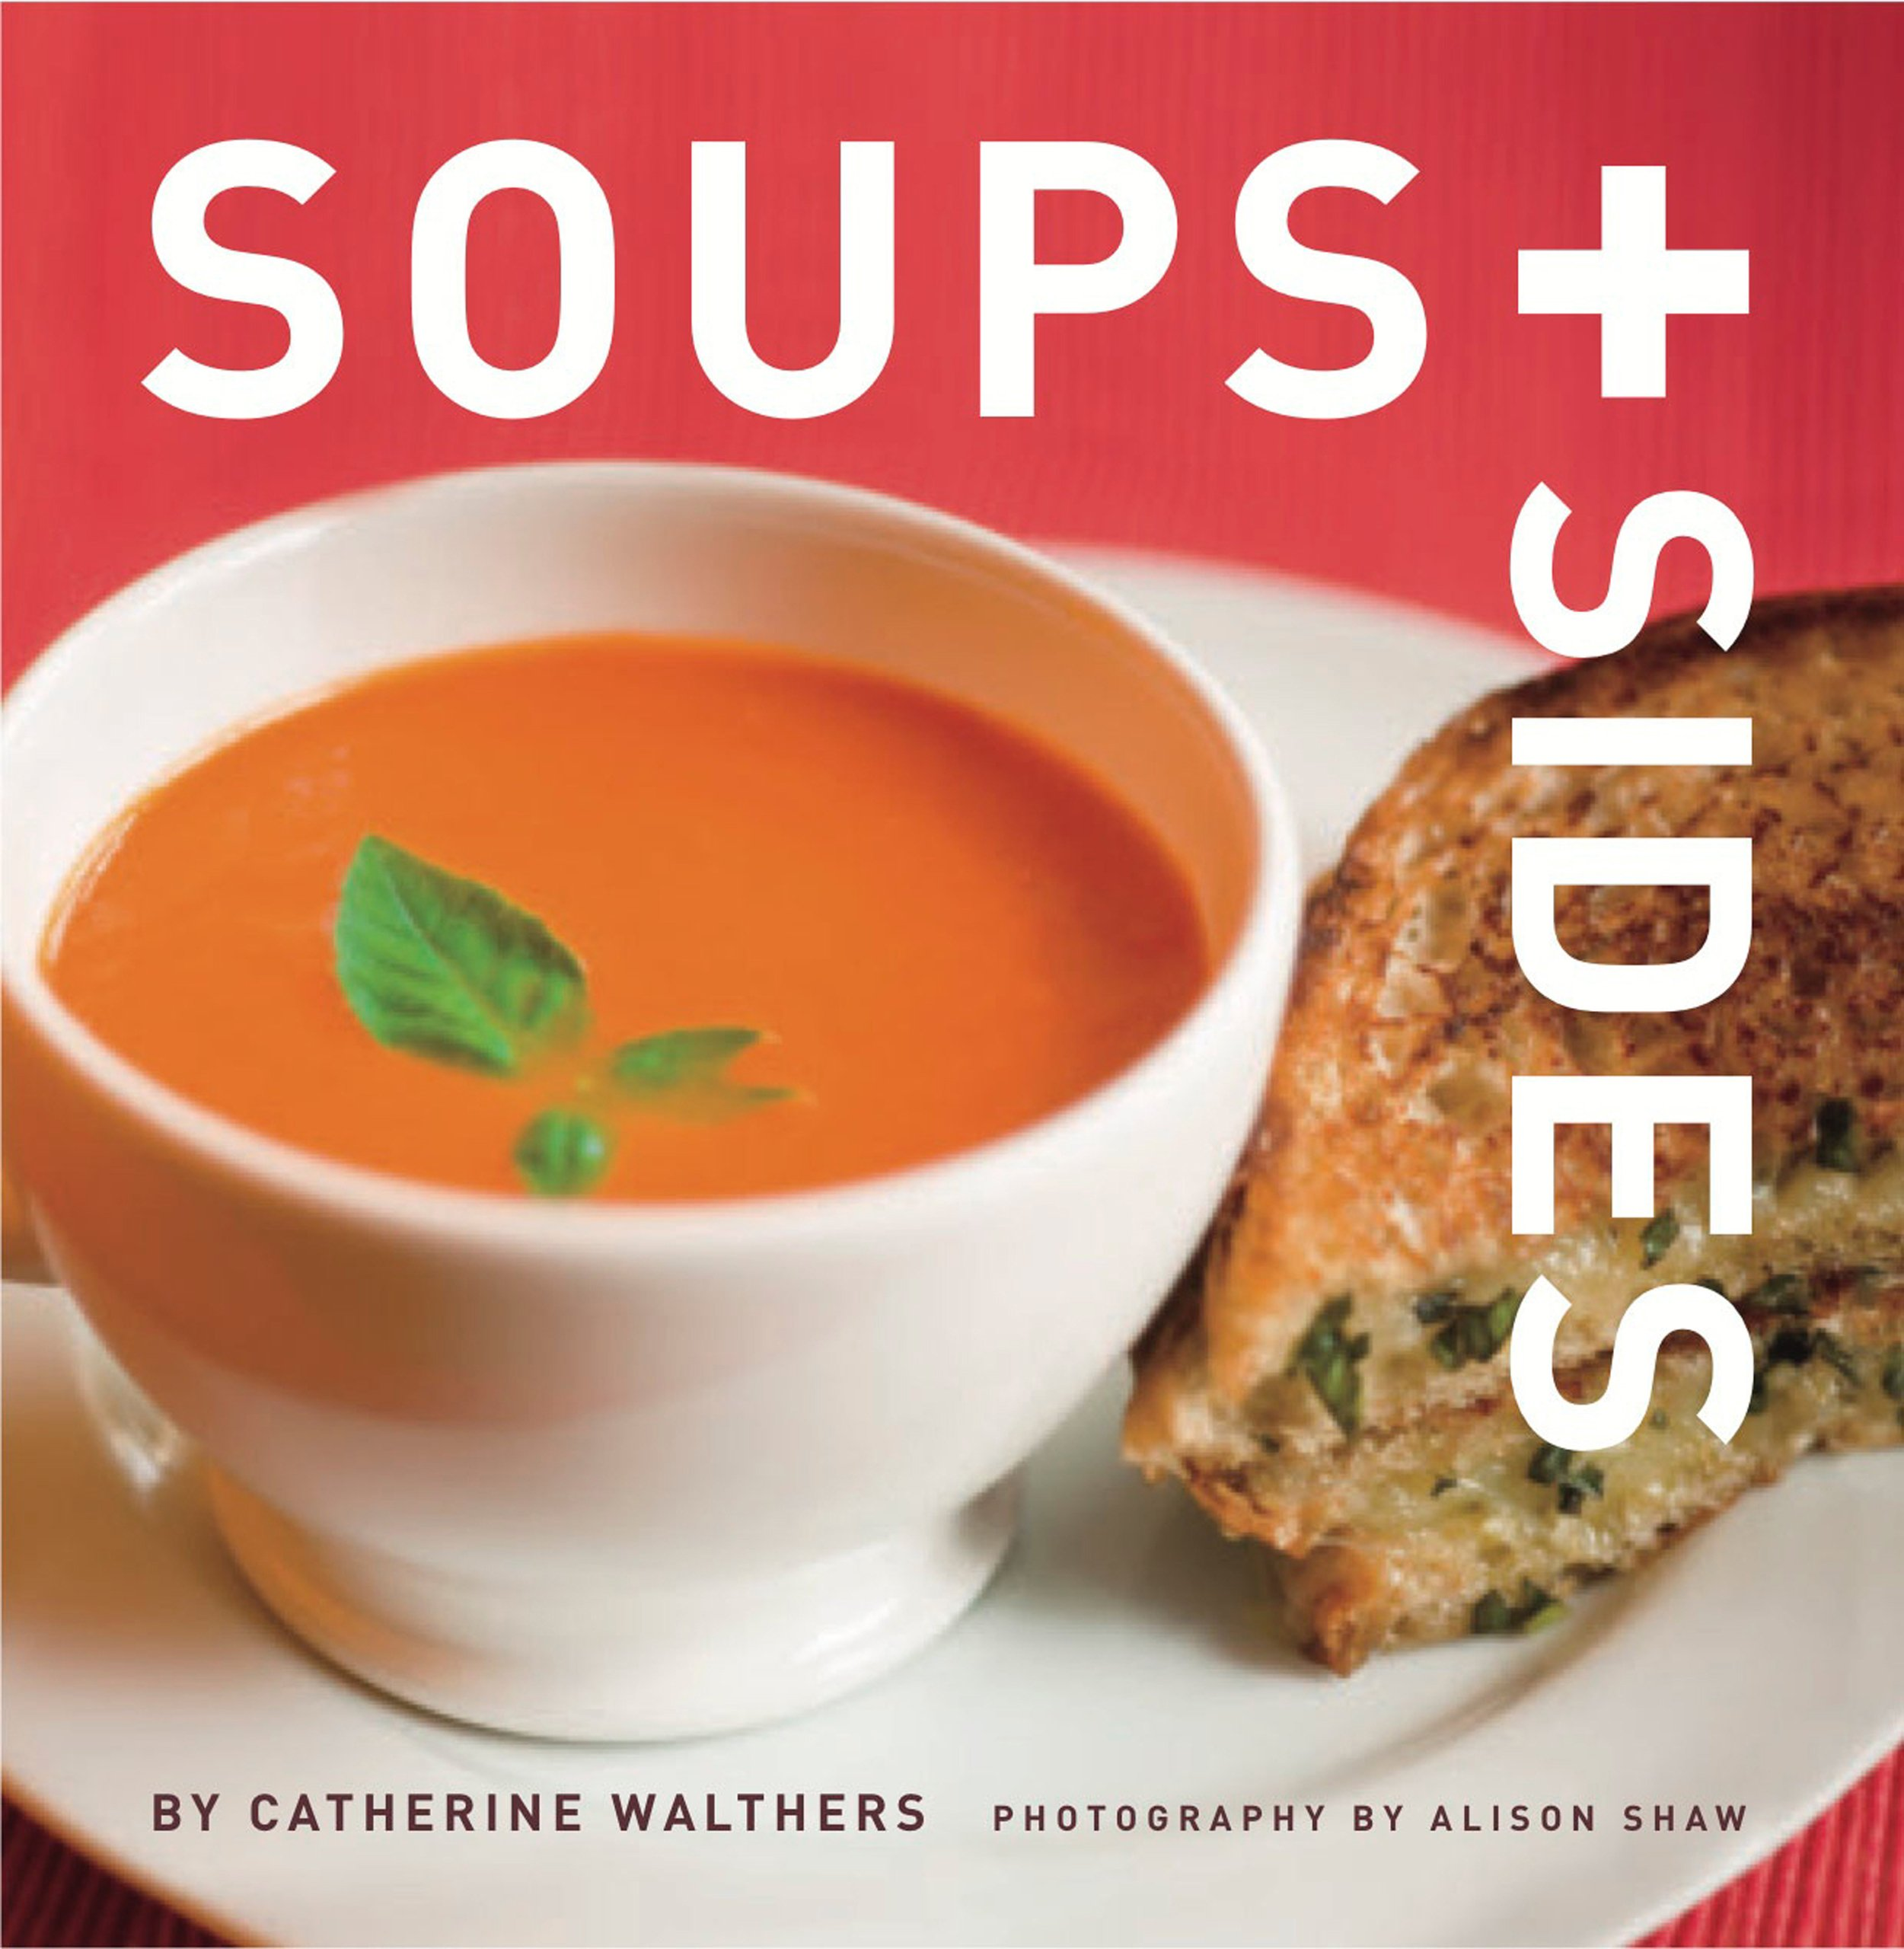 Image OfSoups + Sides